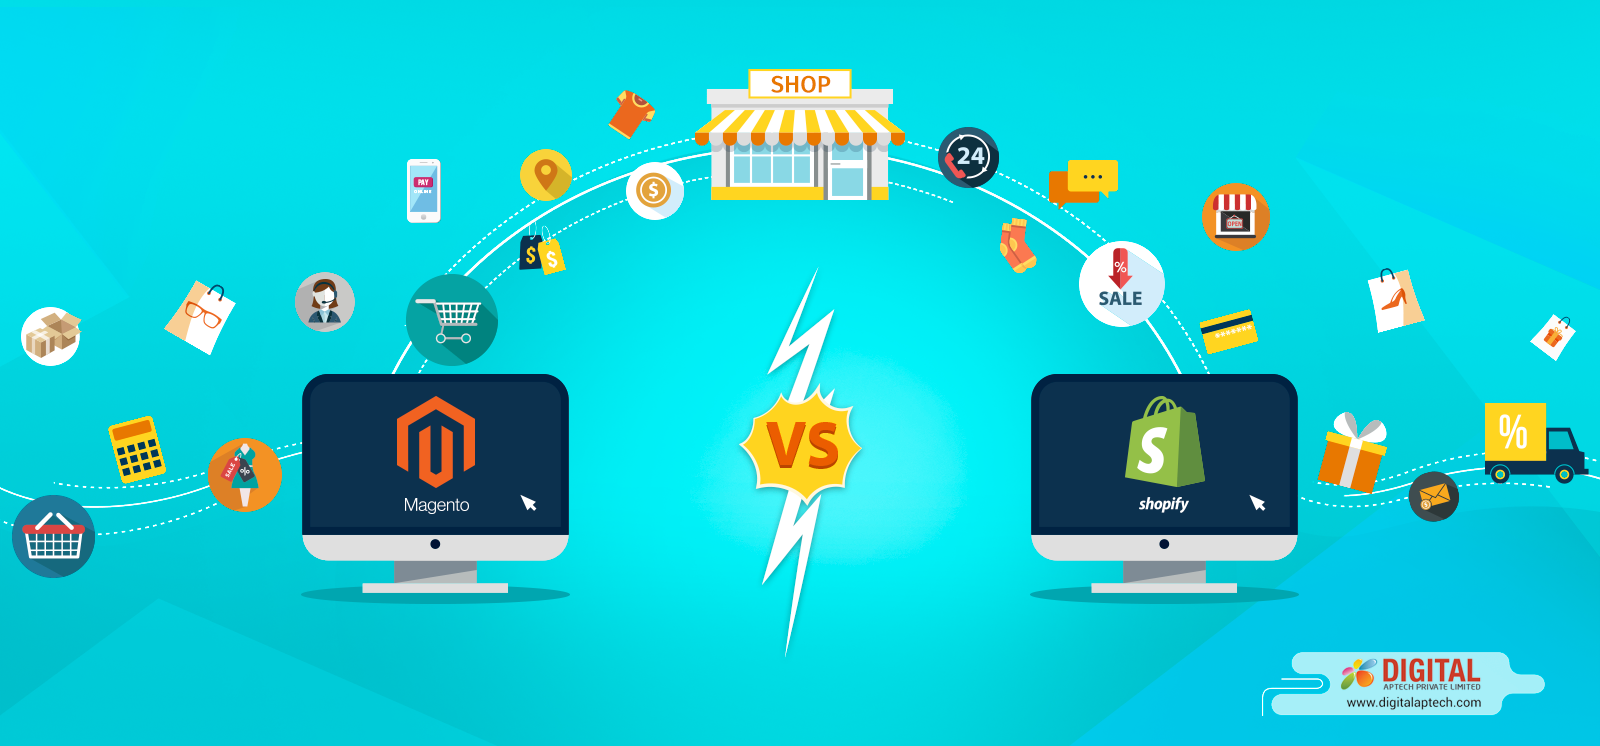 Magento Vs. Shopify – Which is the Best for You?